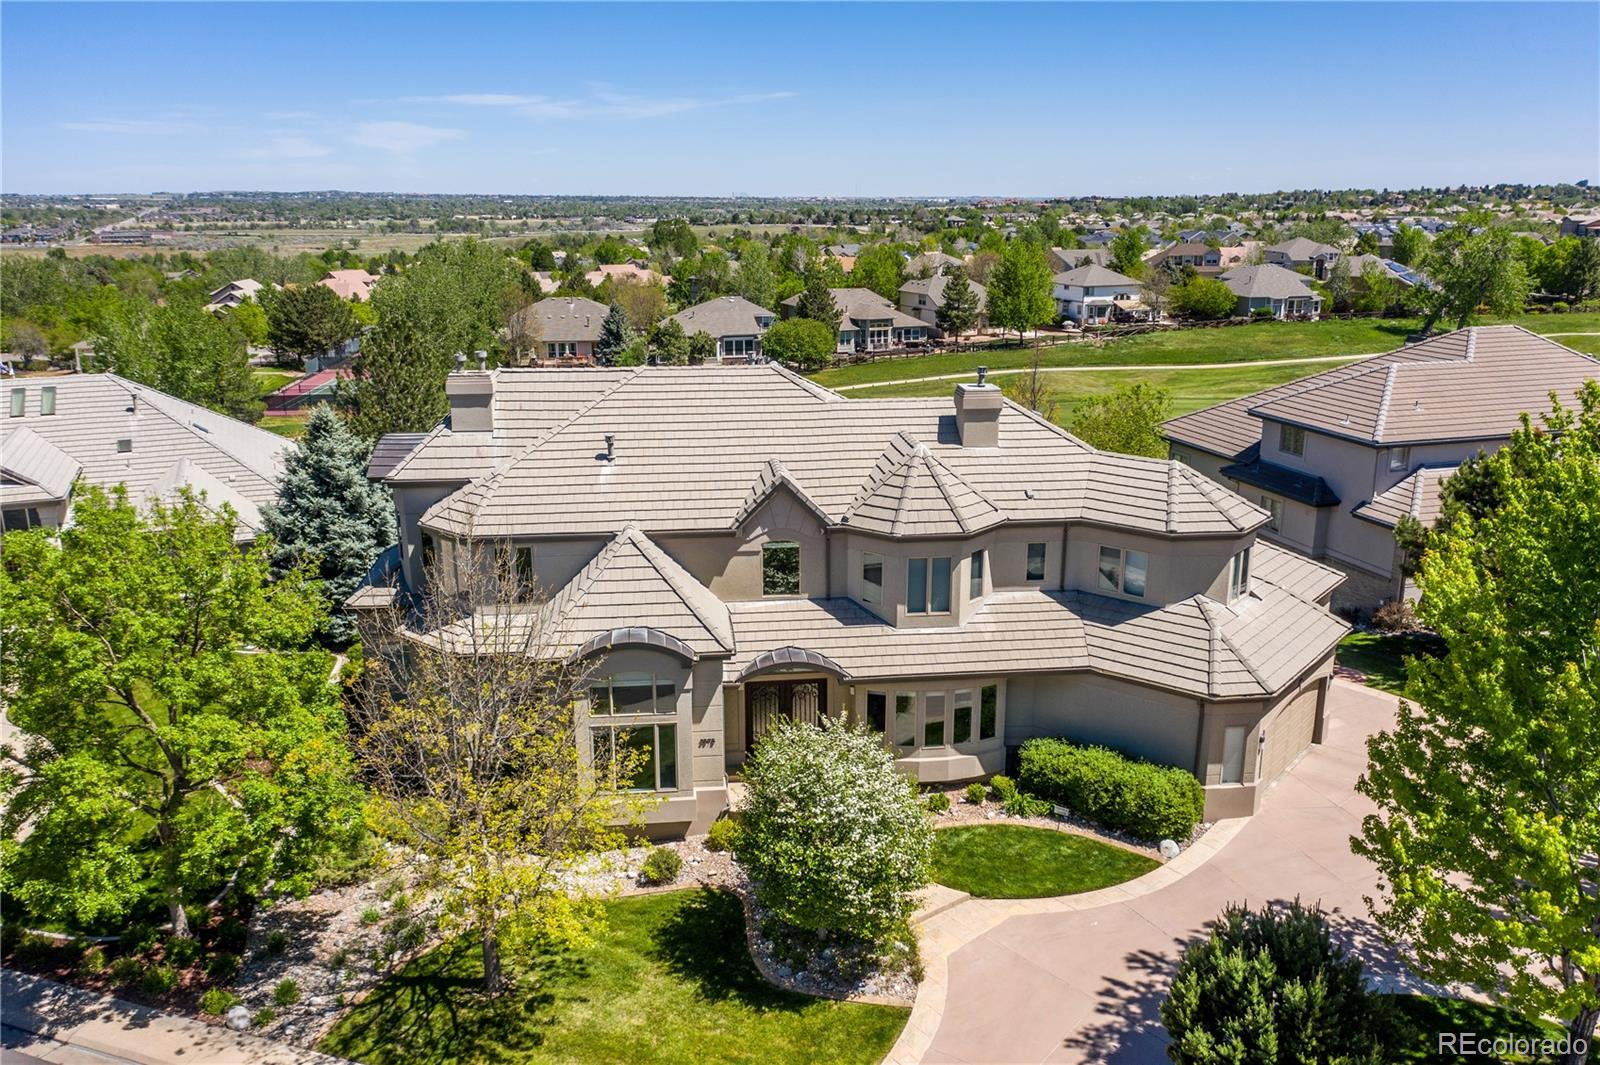 MLS# 7642553 - 2 - 3575 W 110th Place, Westminster, CO 80031